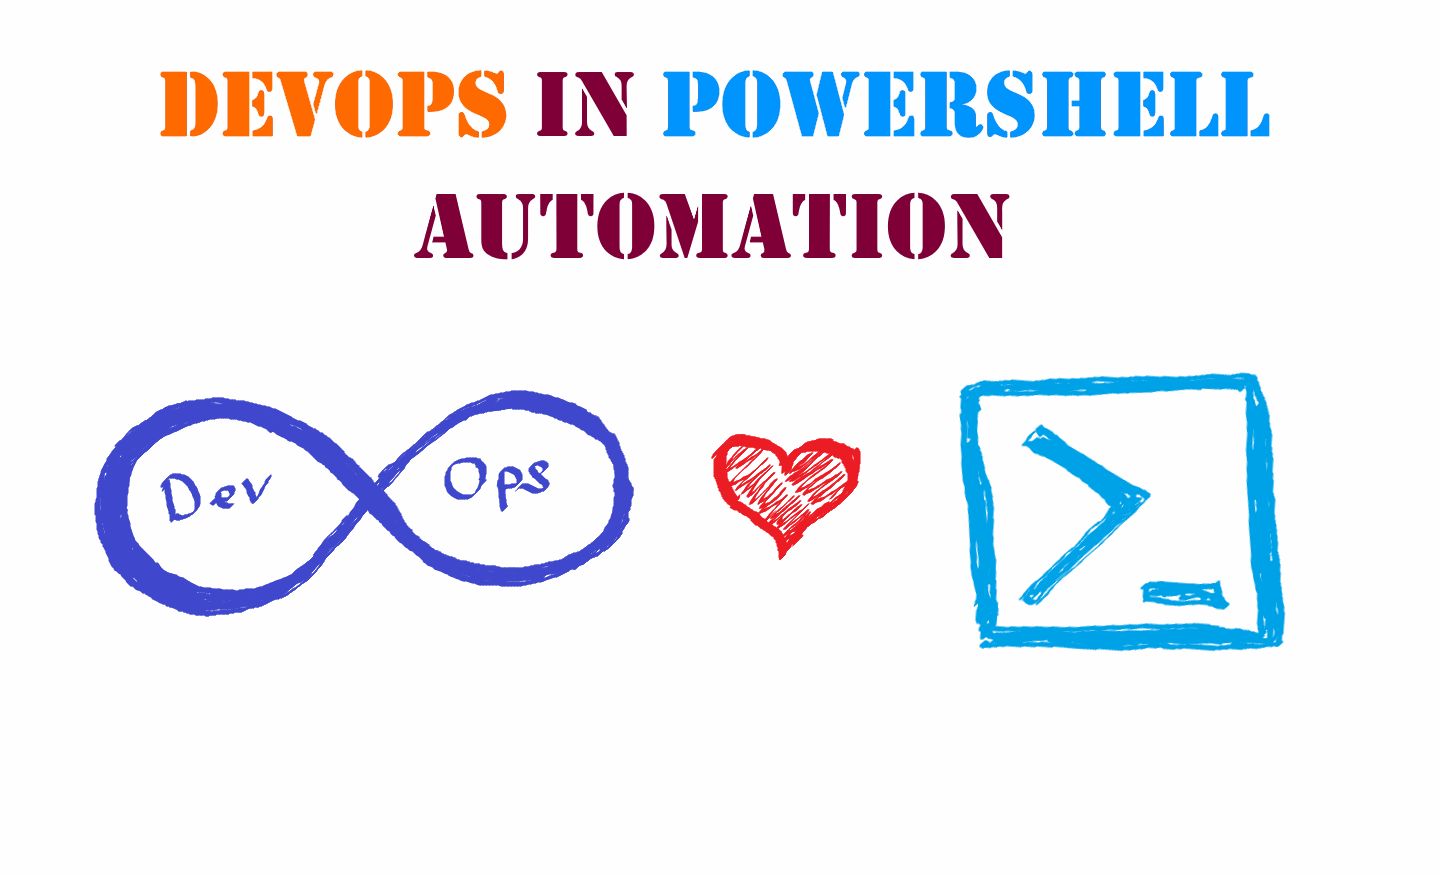 DevOps in PowerShell automation